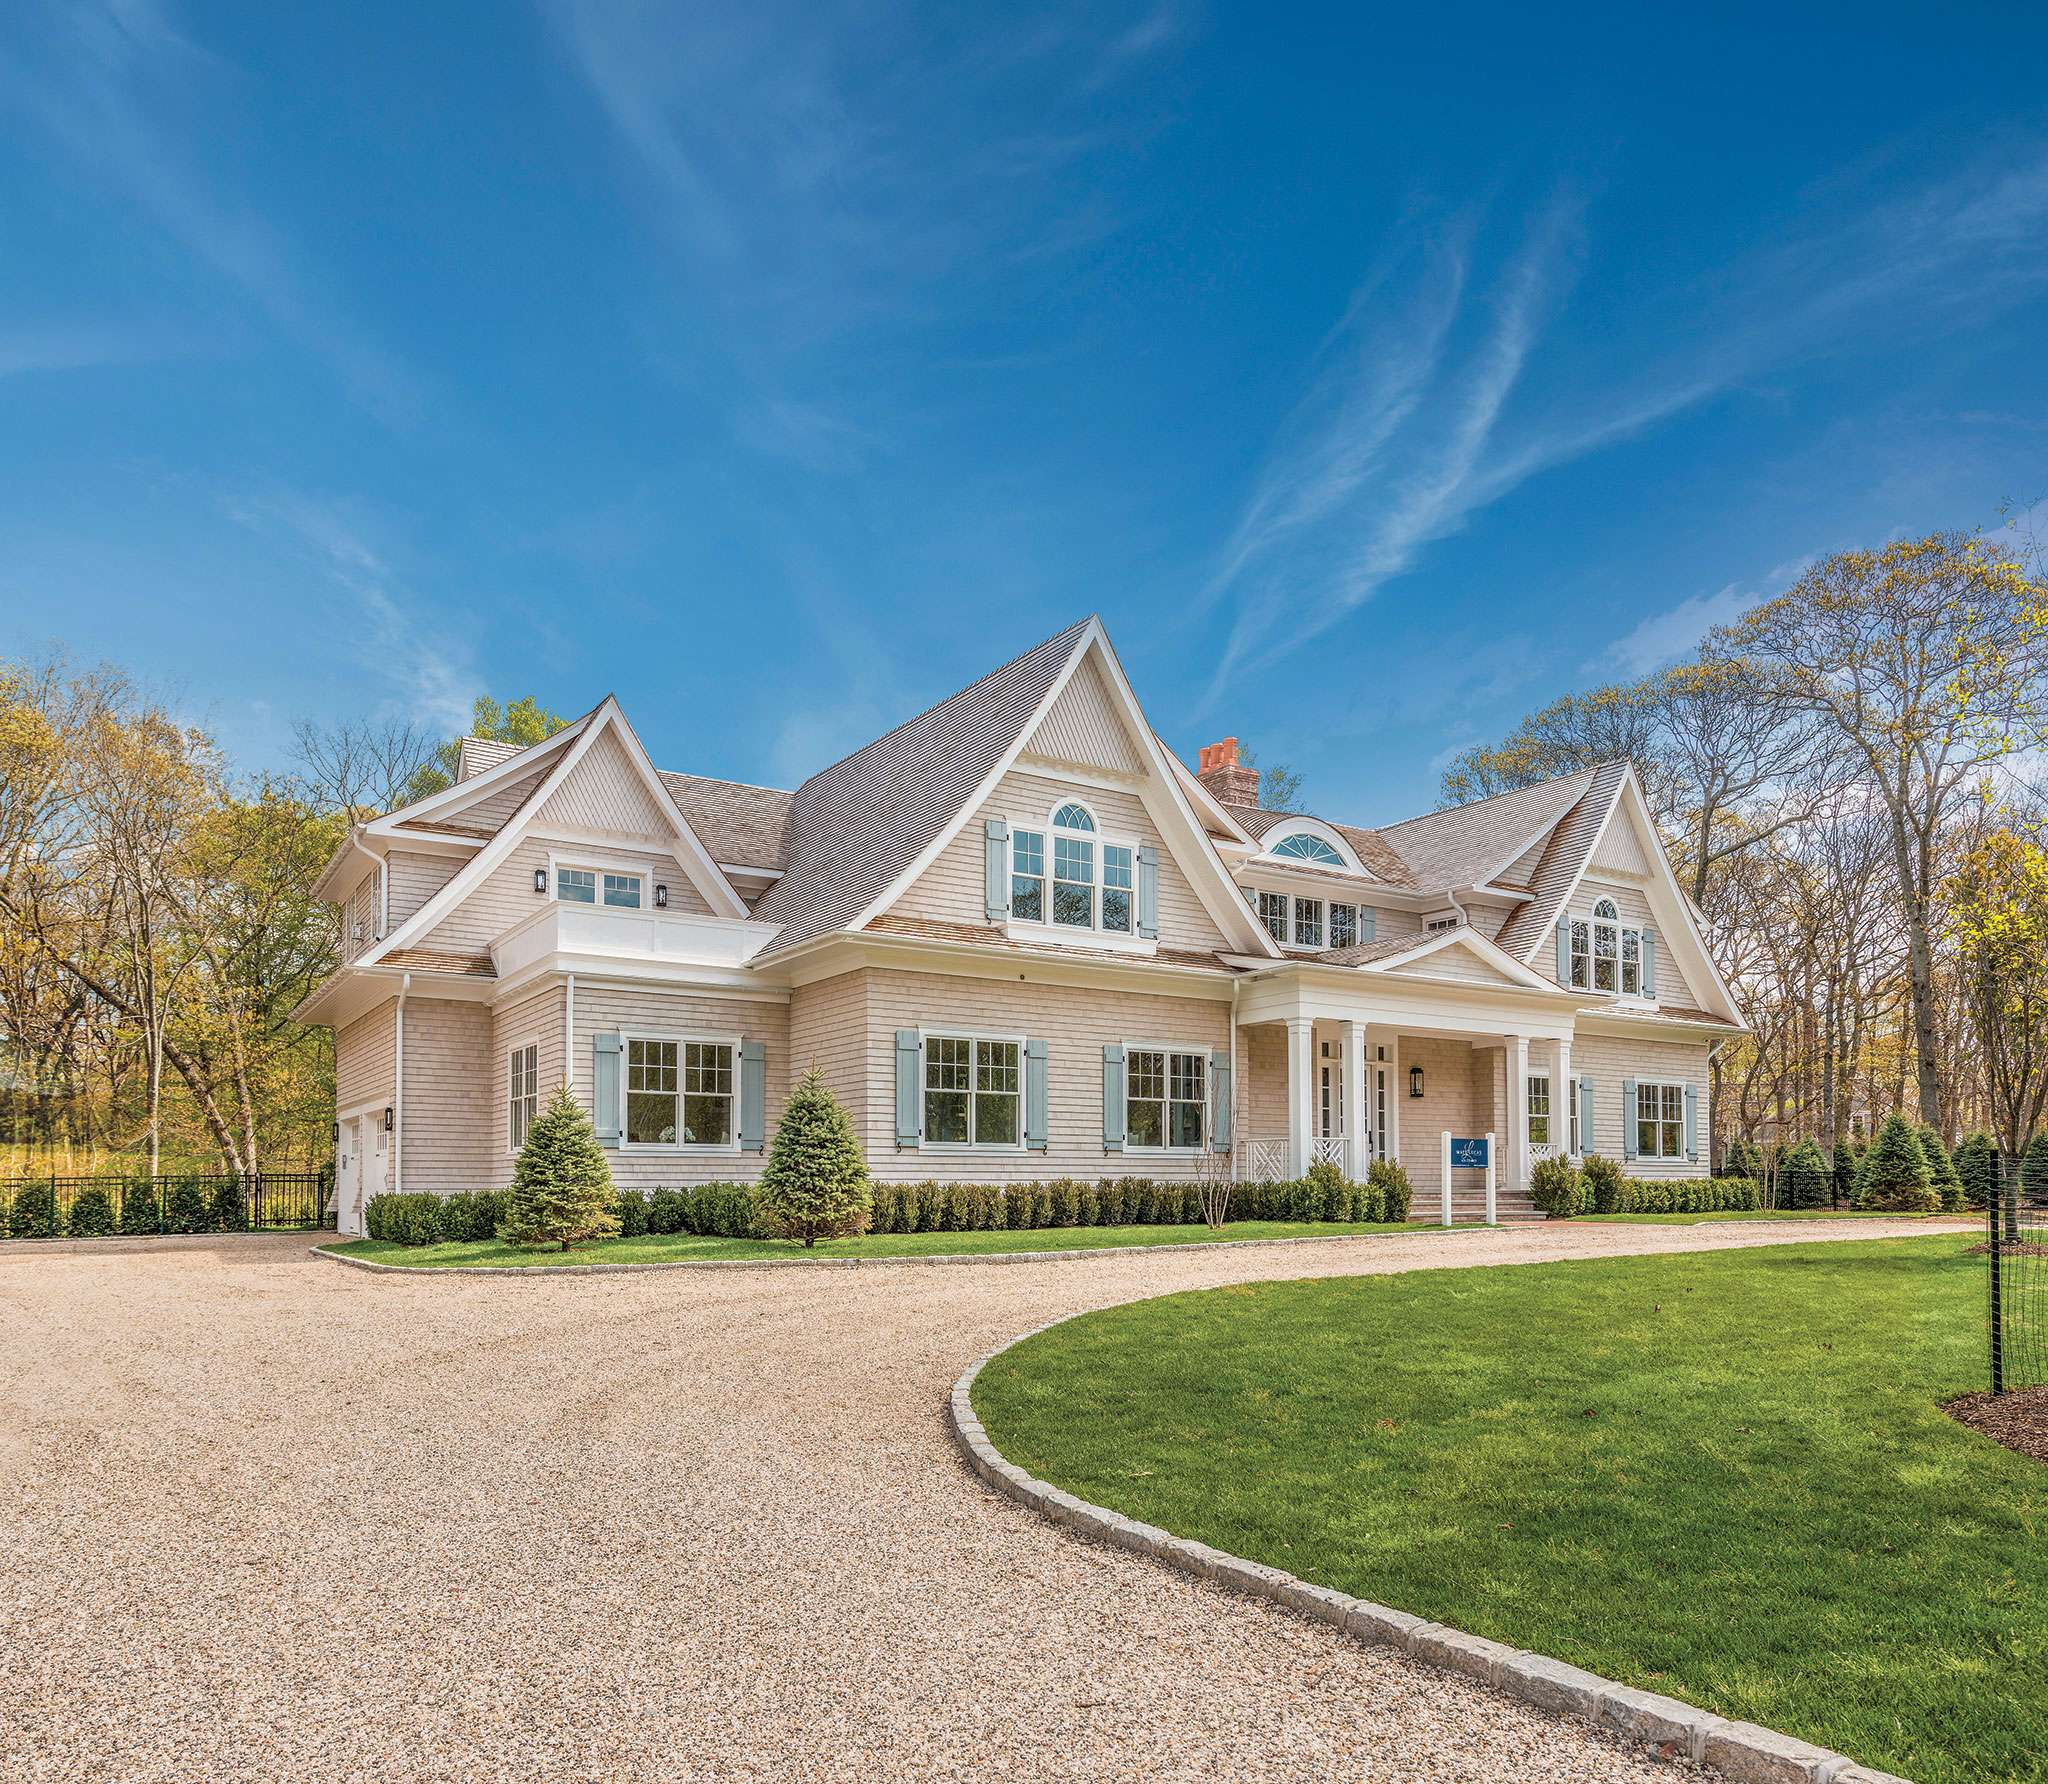 Single Family Home for Sale at 3.5 +/- Acre North Haven Point Estate 5 Blue Heron Way, Sag Harbor, New York